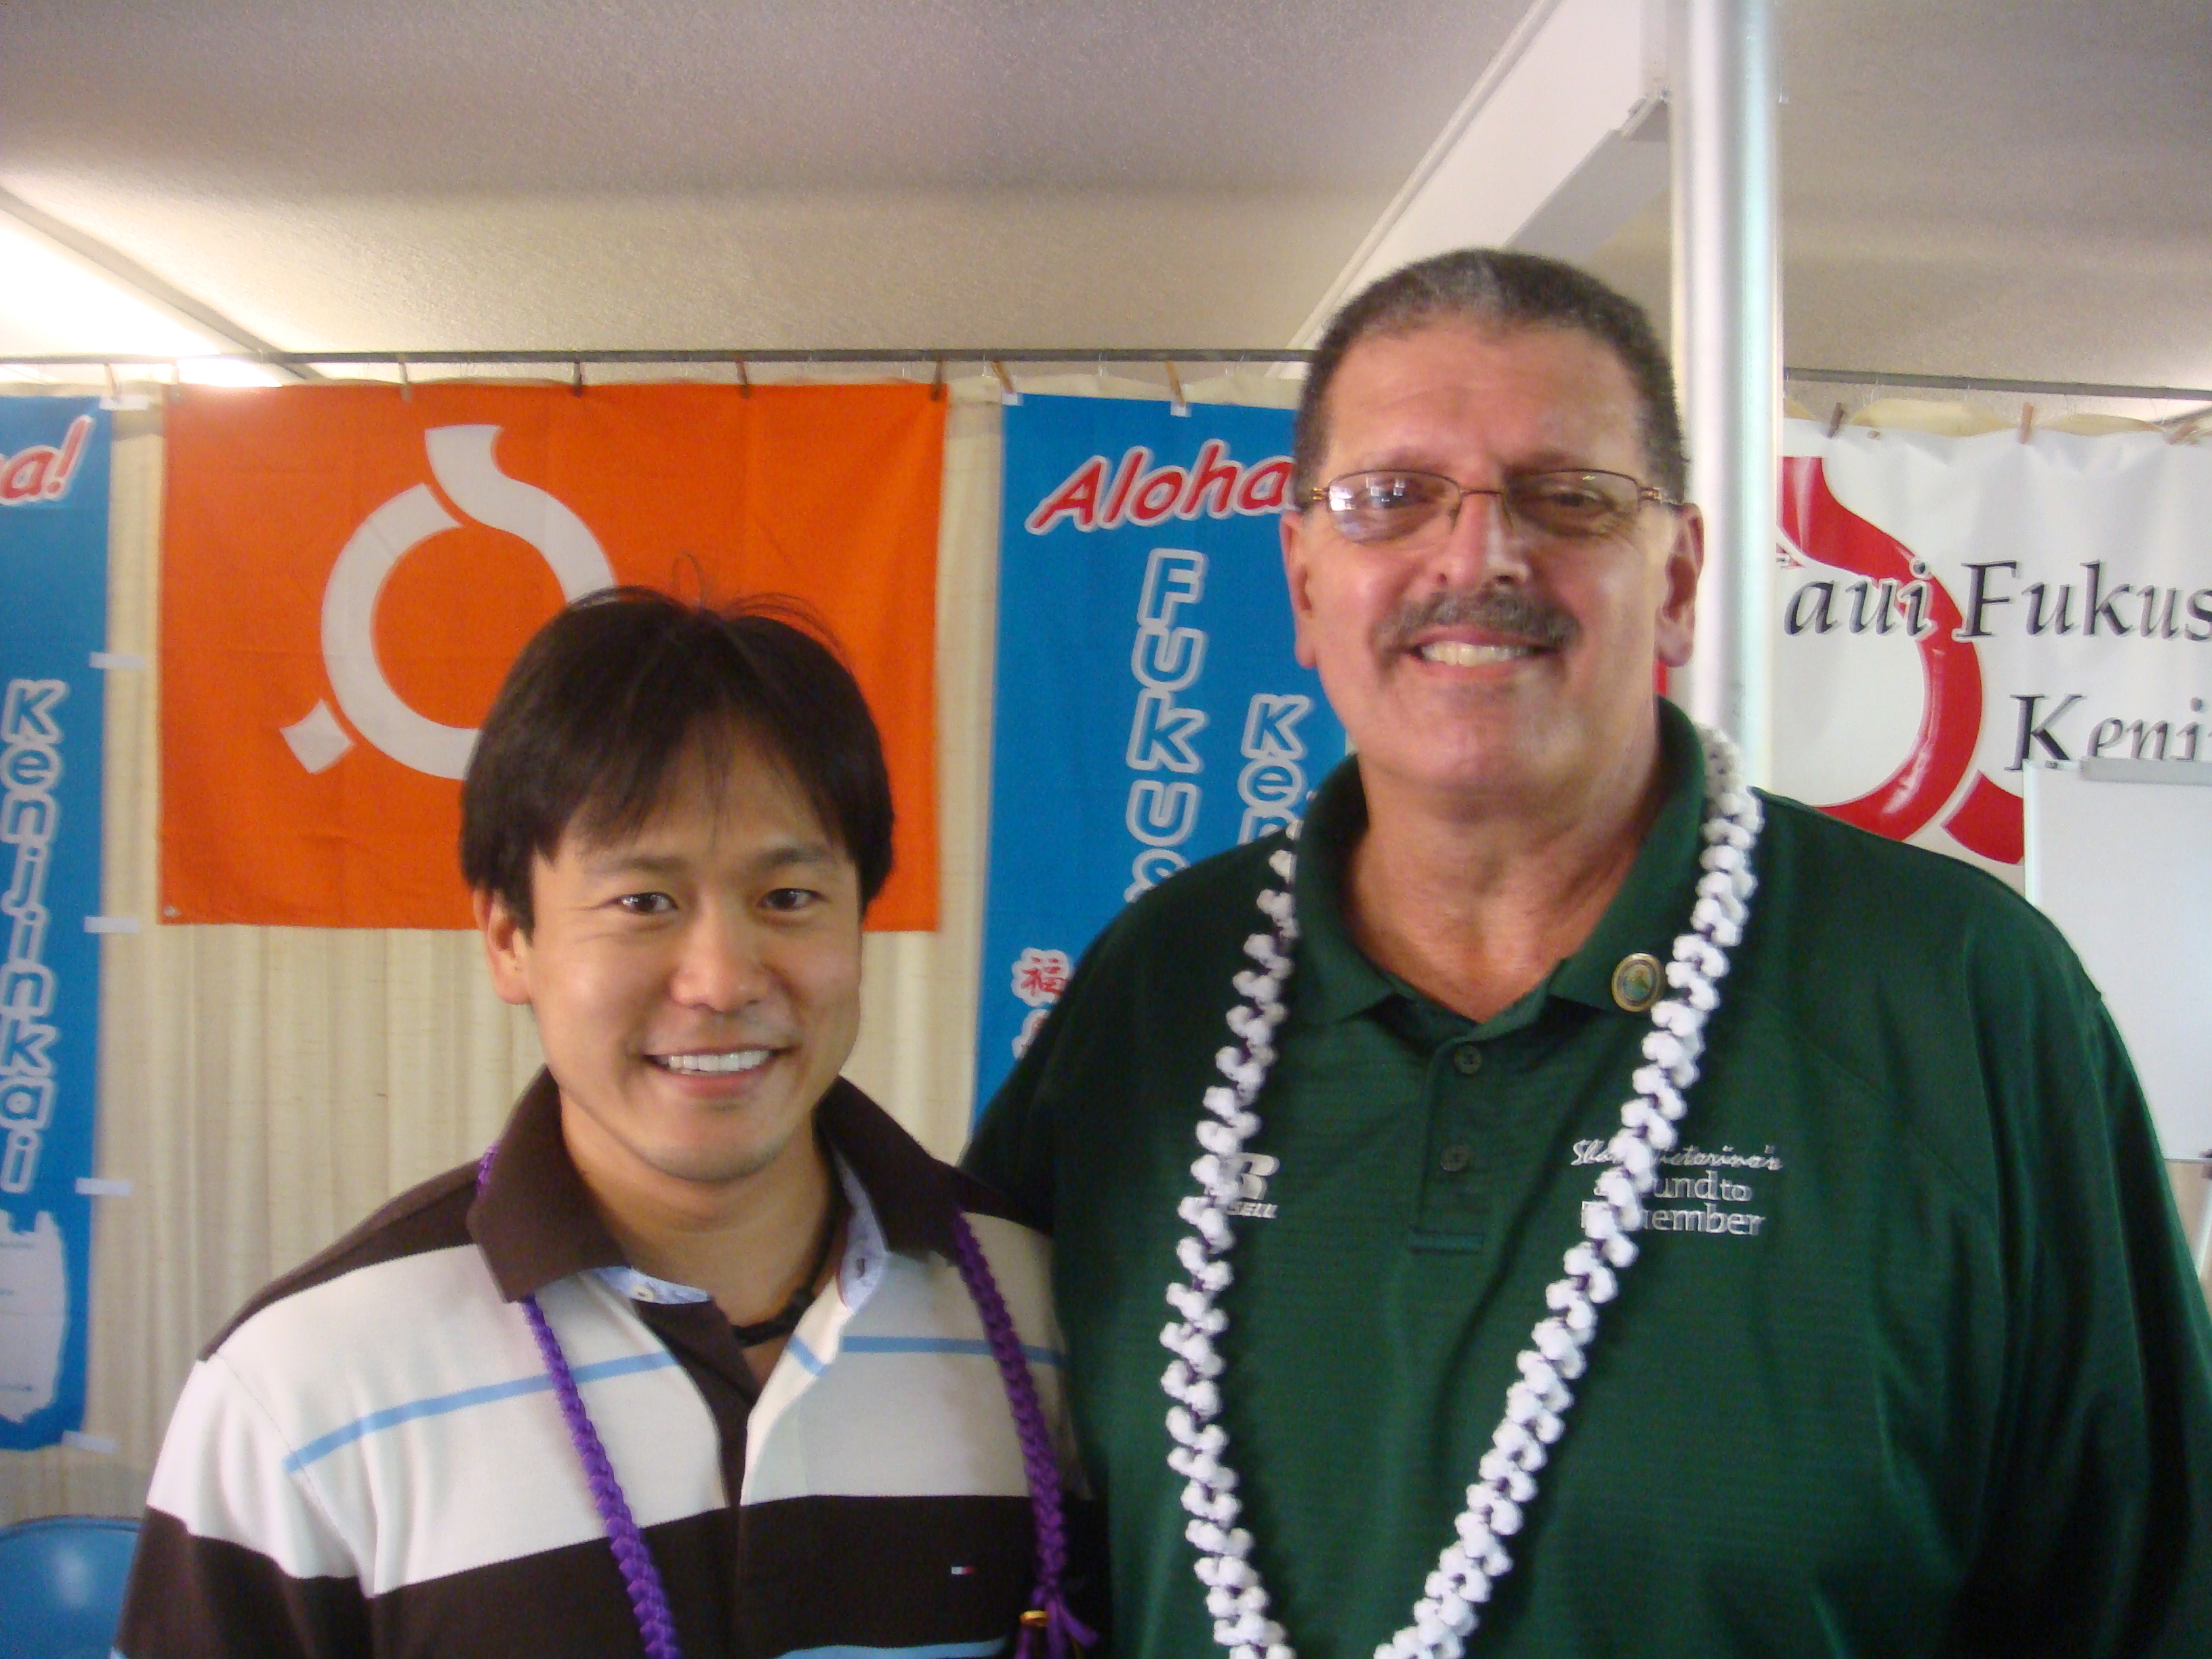 Rep. Jon Riki Karamatsu & Maui Councilman Mike Victorino.  My dad's friend from their Jaycee days.  He took us to see his son in tha family room after a Phillies game in Philadelphia in July 2008.